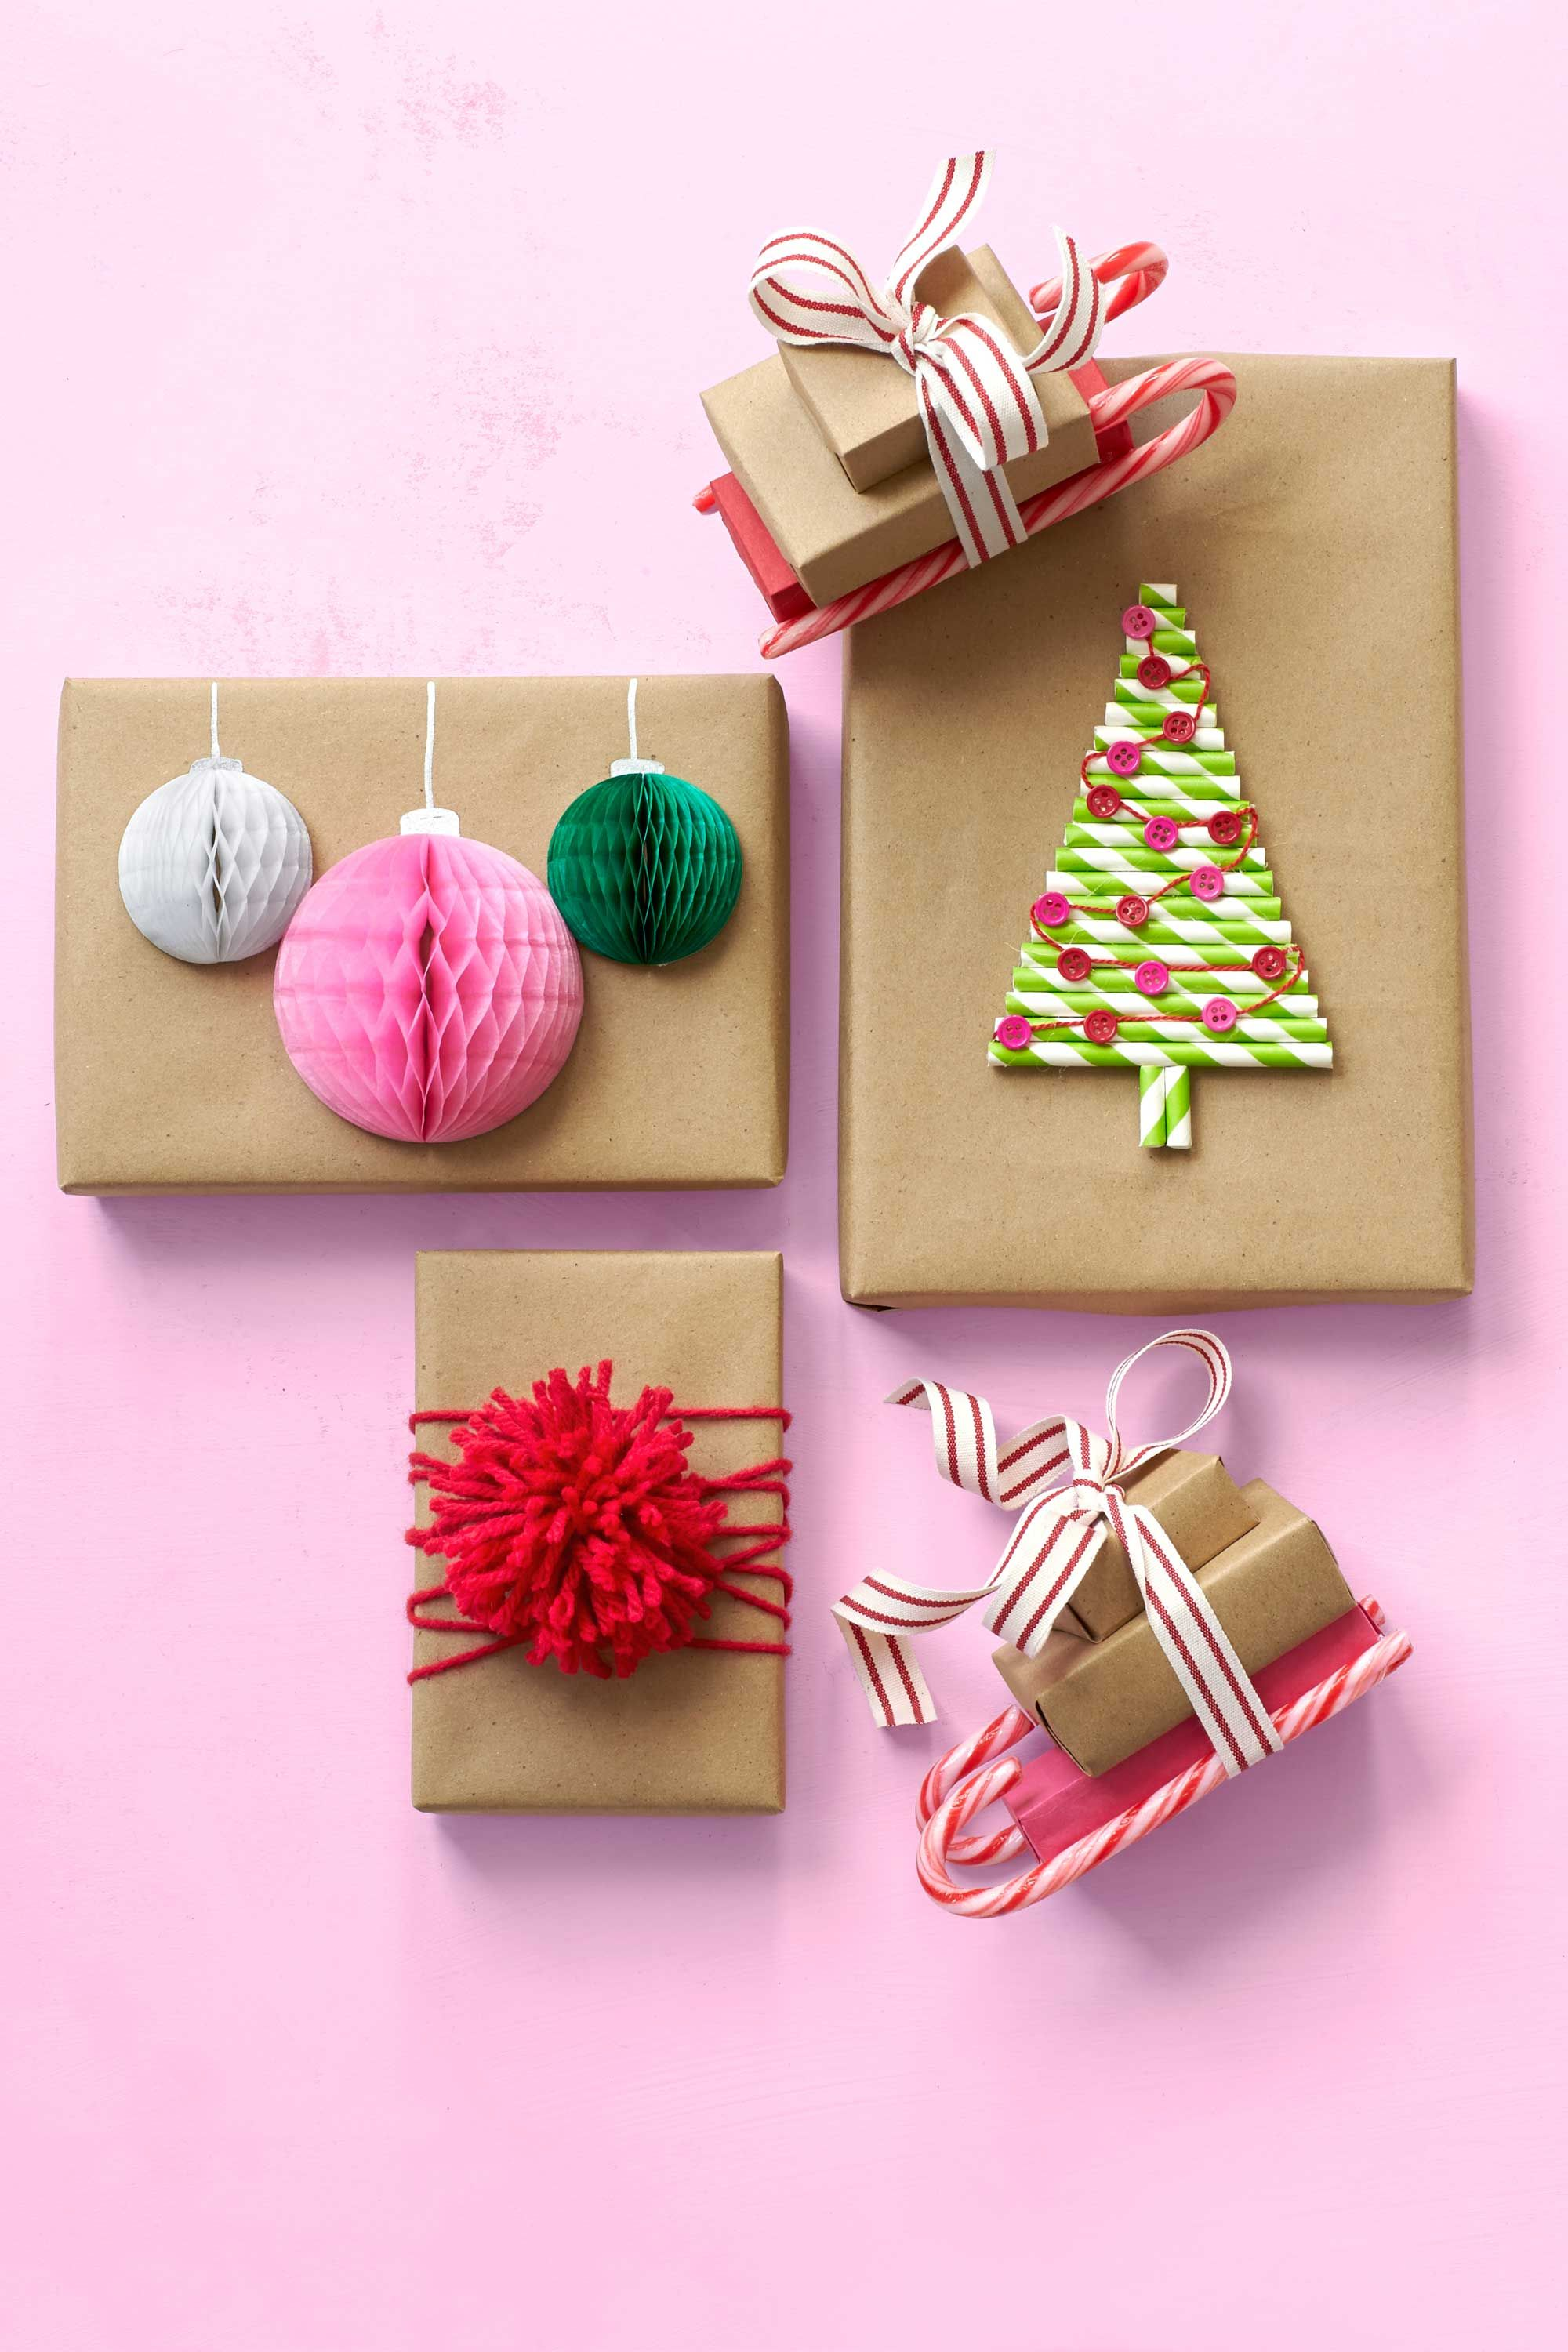 71 Easy Christmas Crafts Simple DIY Holiday Craft Ideas & Projects